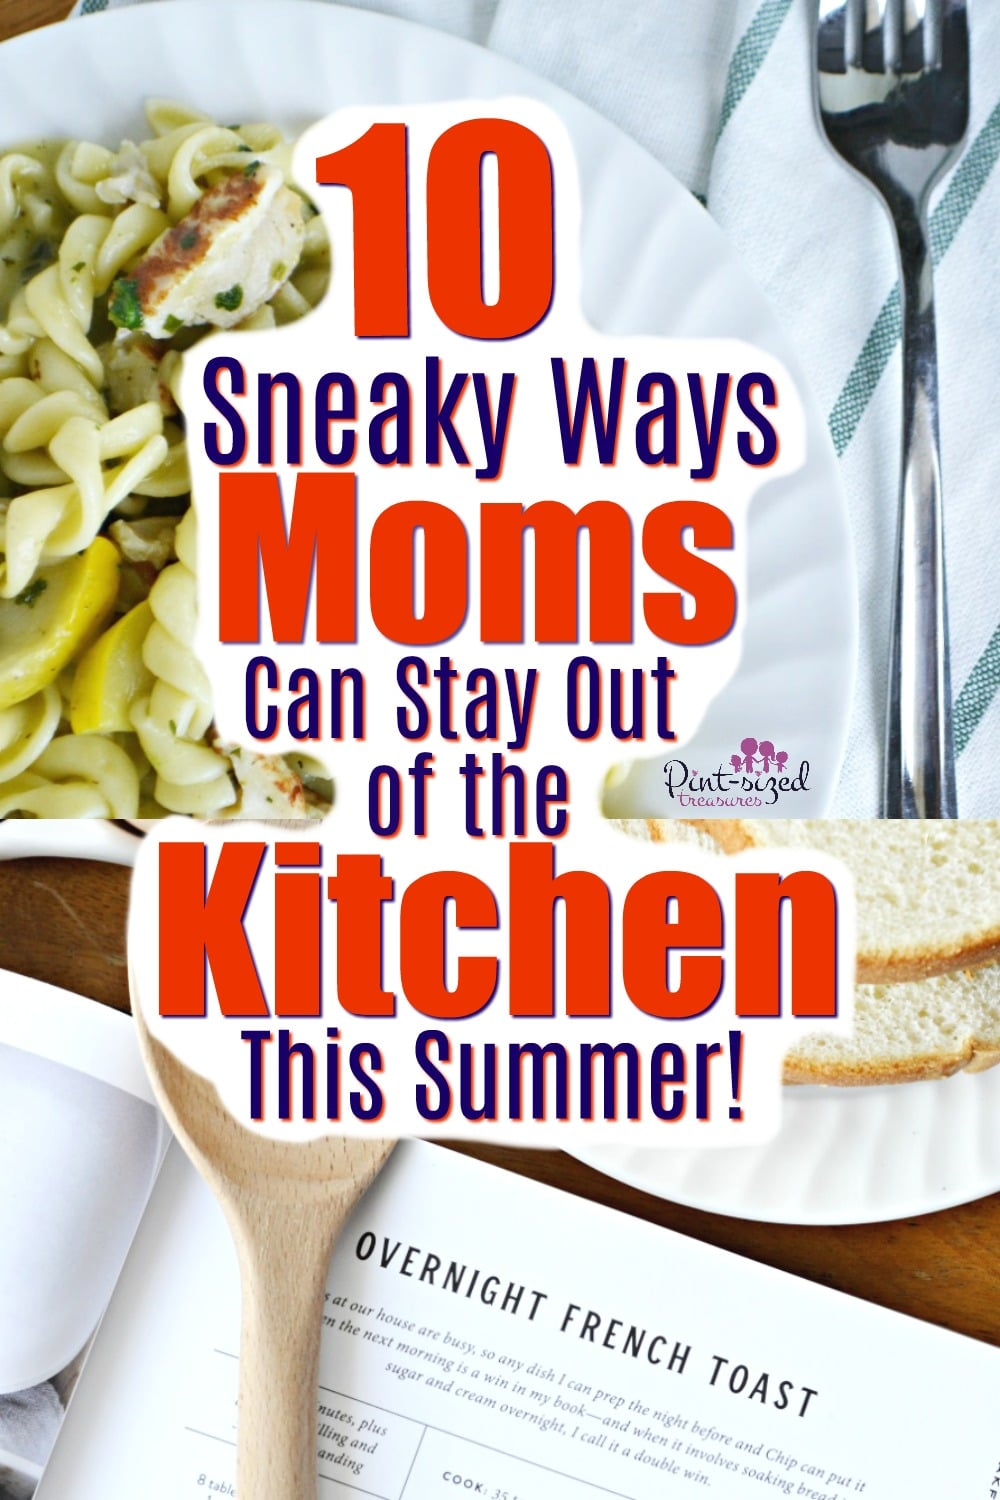 Want to stay out of the kitchen this summer? Check out this ten sneaky ways you can spend less time in the kitchen and more time with your kids!